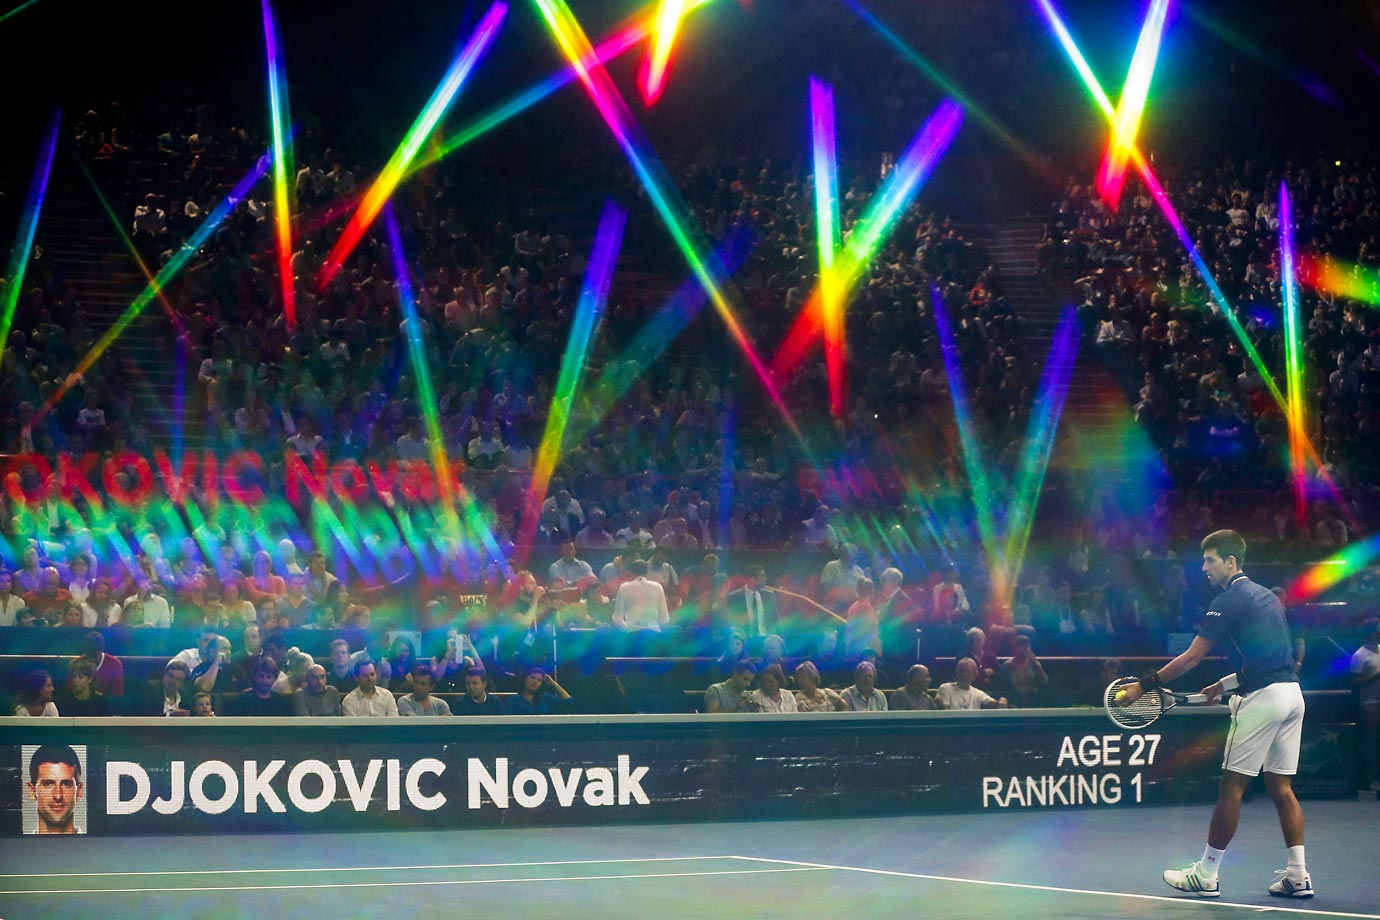 Crazy light effects surround Novak Djokovic during the BNP Paribas Masters Indoor 2014 in Paris.